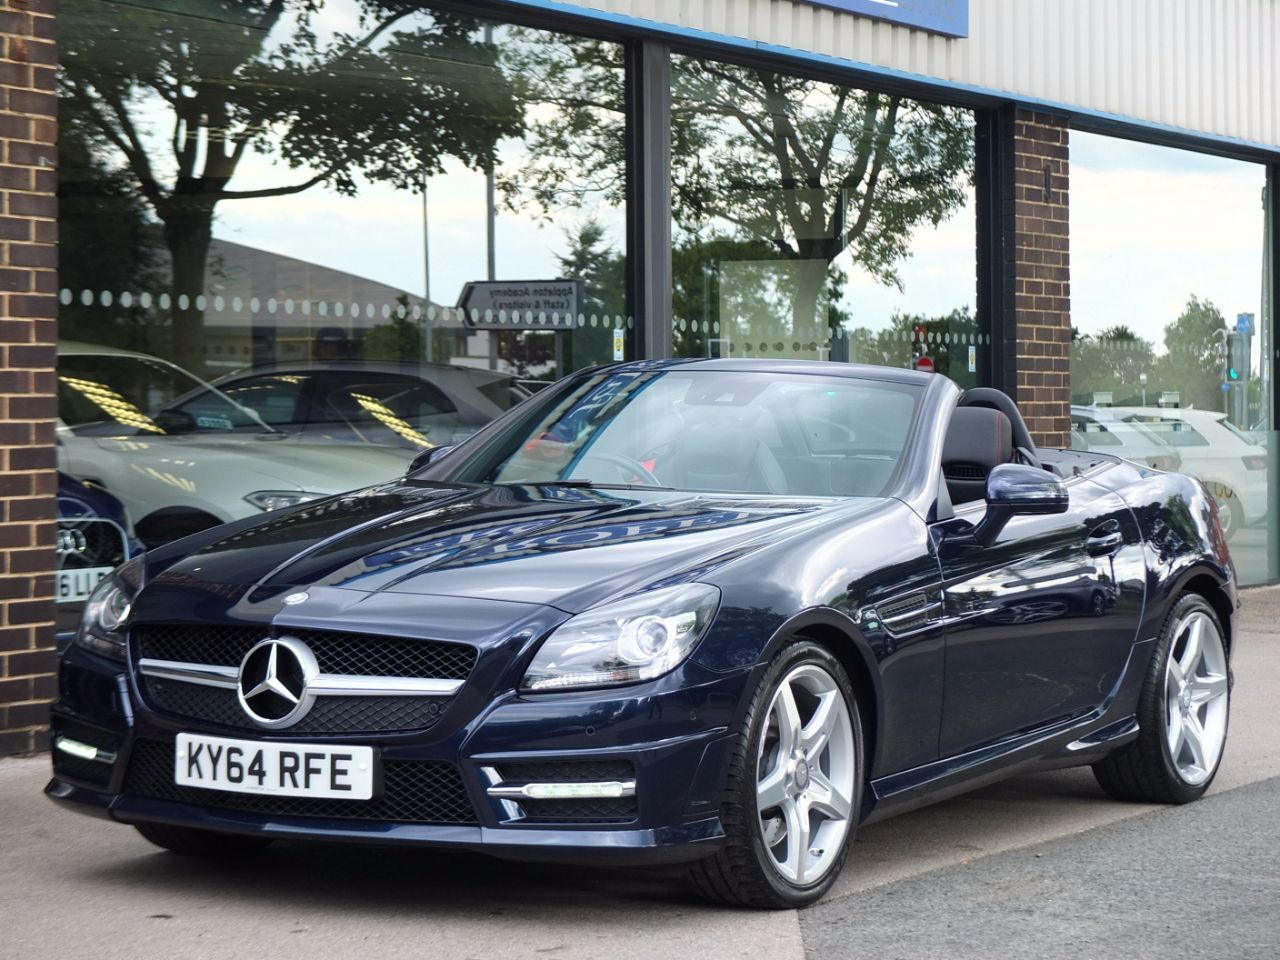 Mercedes-Benz SLK 2.2 250 CDI BlueEFFICIENCY AMG Sport 7G-Tronic Plus Convertible Diesel Cavansite Blue MetallicMercedes-Benz SLK 2.2 250 CDI BlueEFFICIENCY AMG Sport 7G-Tronic Plus Convertible Diesel Cavansite Blue Metallic at fa Roper Ltd Bradford